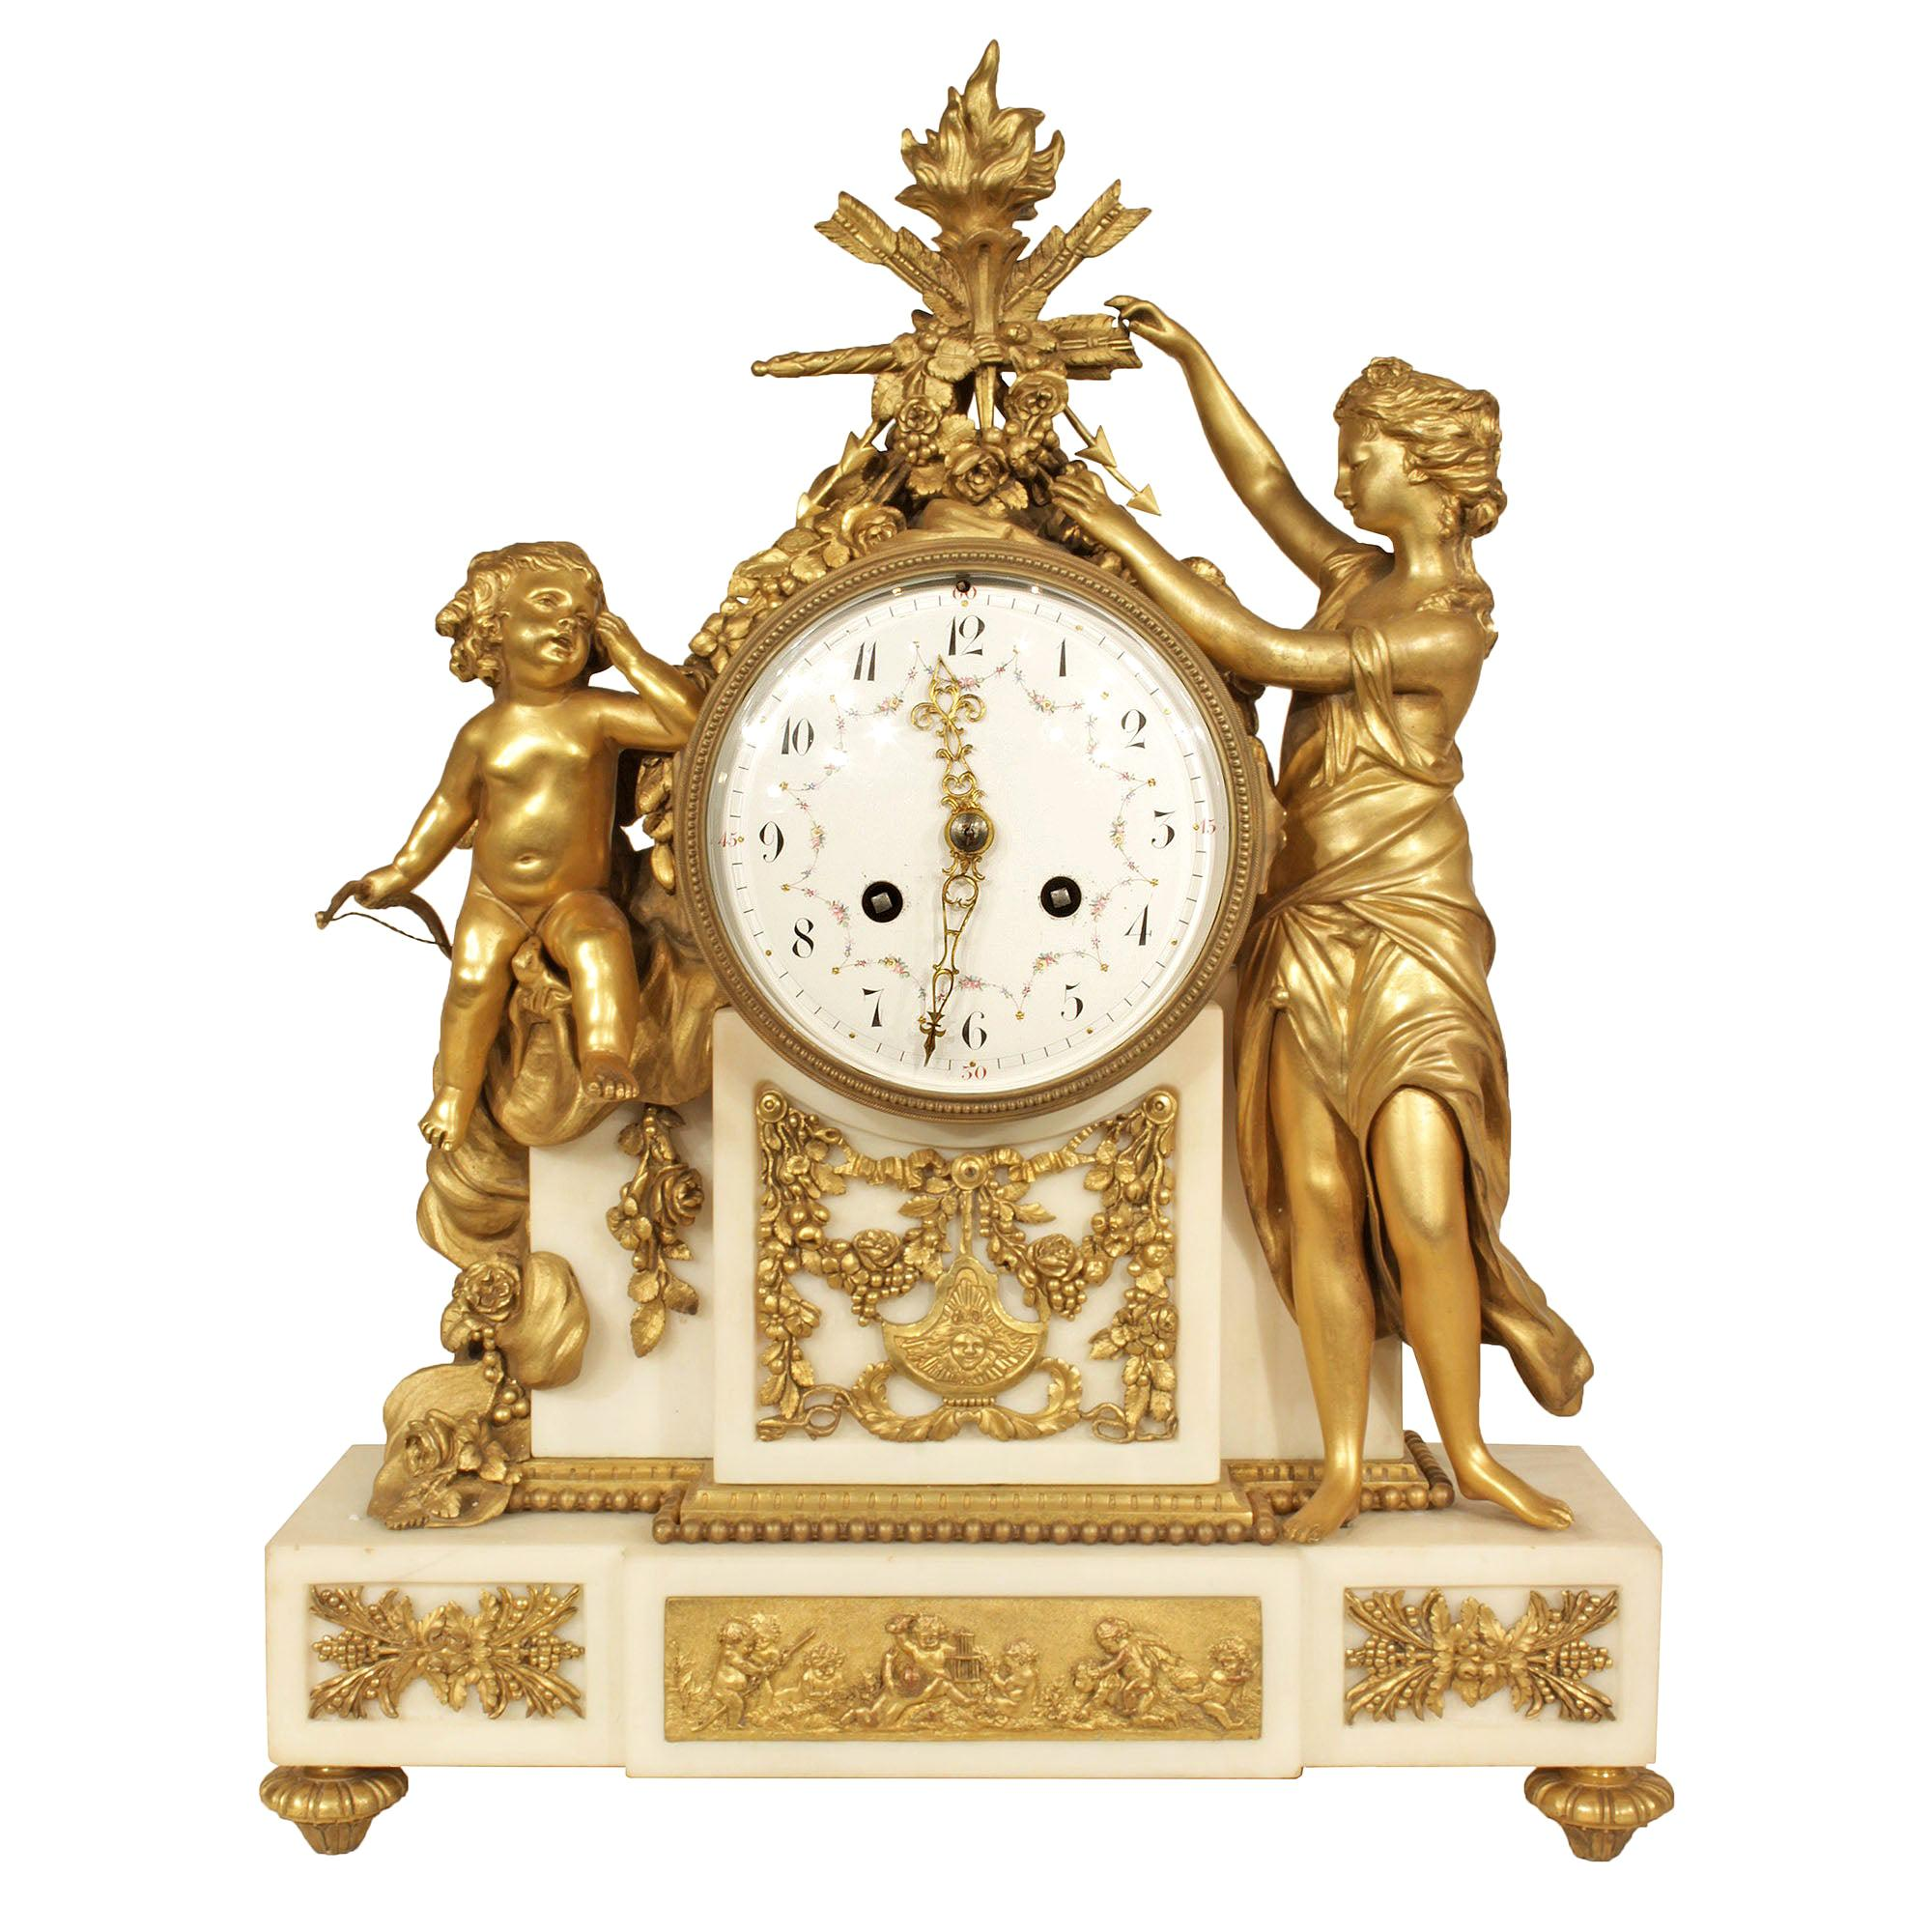 French Mid-19th Century Louis XVI Style Marble and Ormolu Clock